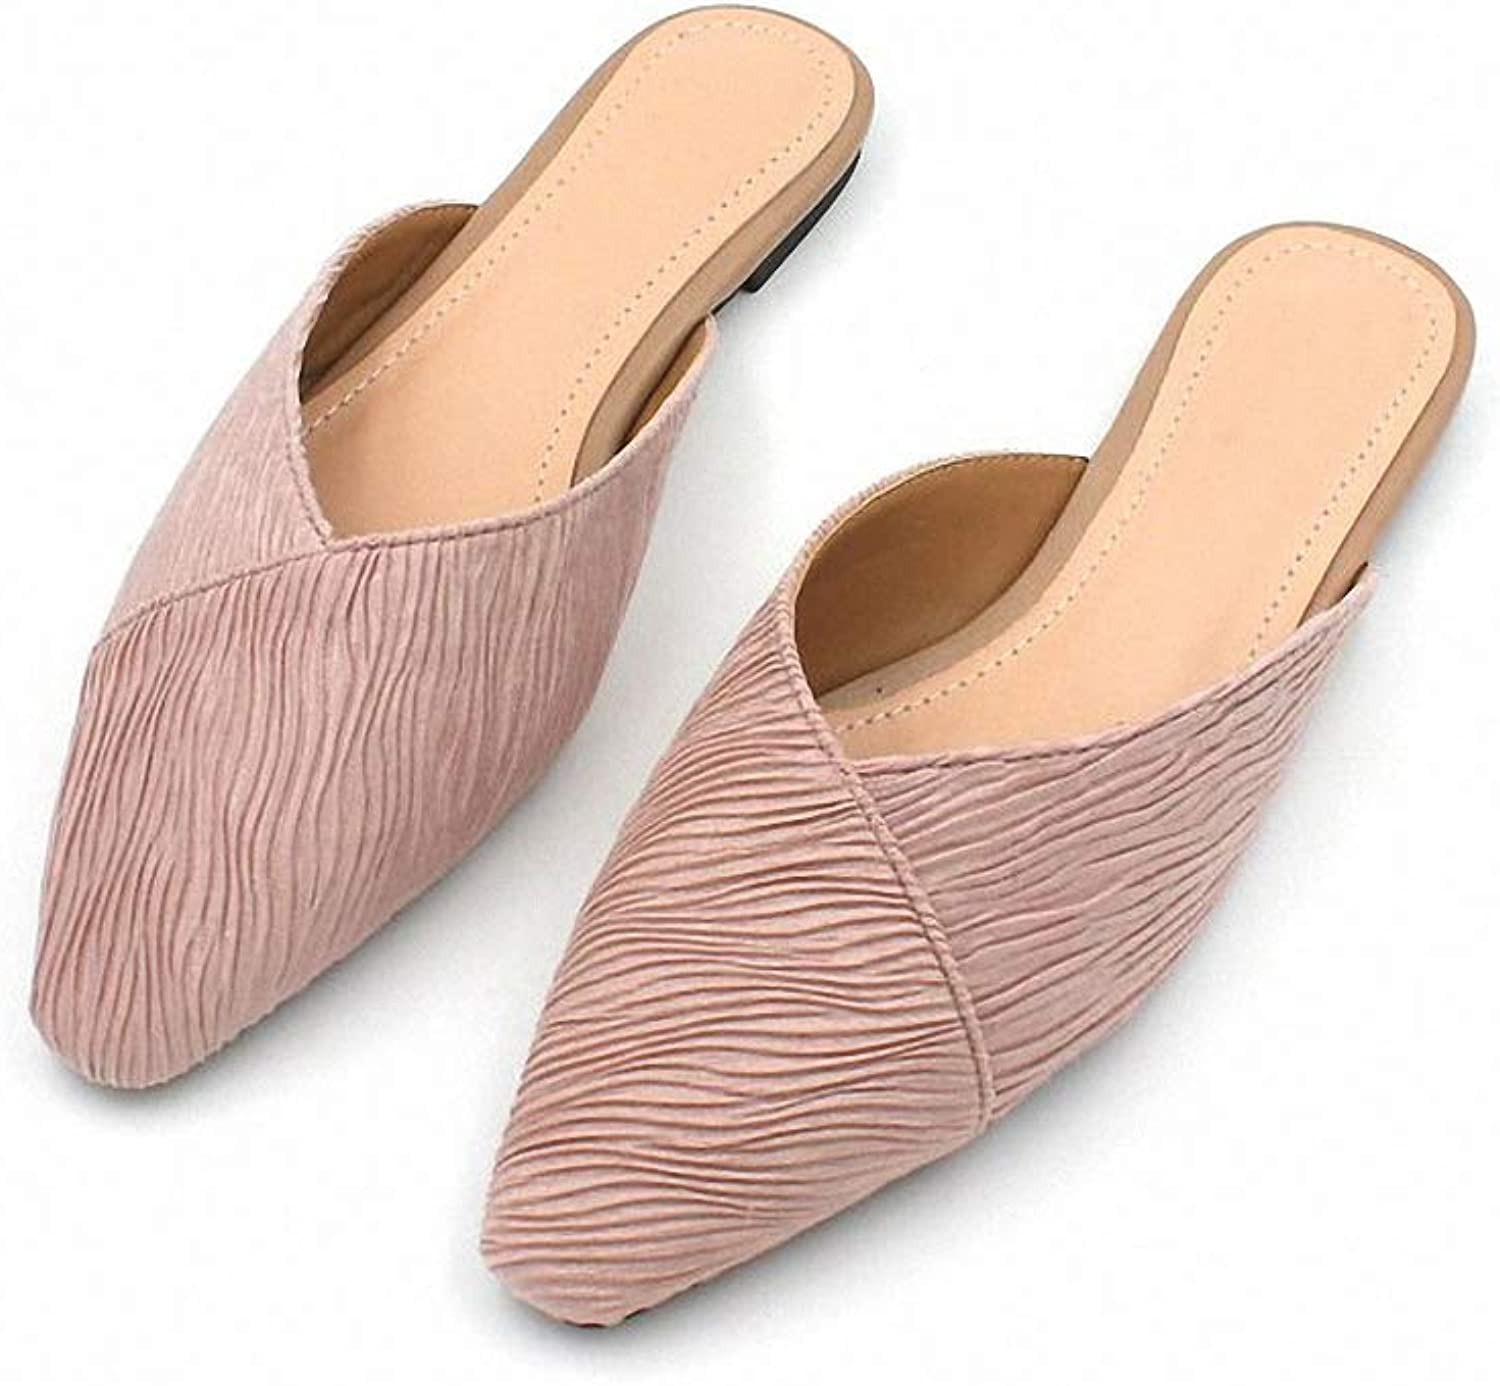 Tebapi Womens Low-Heeled Sandal shoes Spring New Wild Cloth Outside Wearing Retro Half Slippers Women